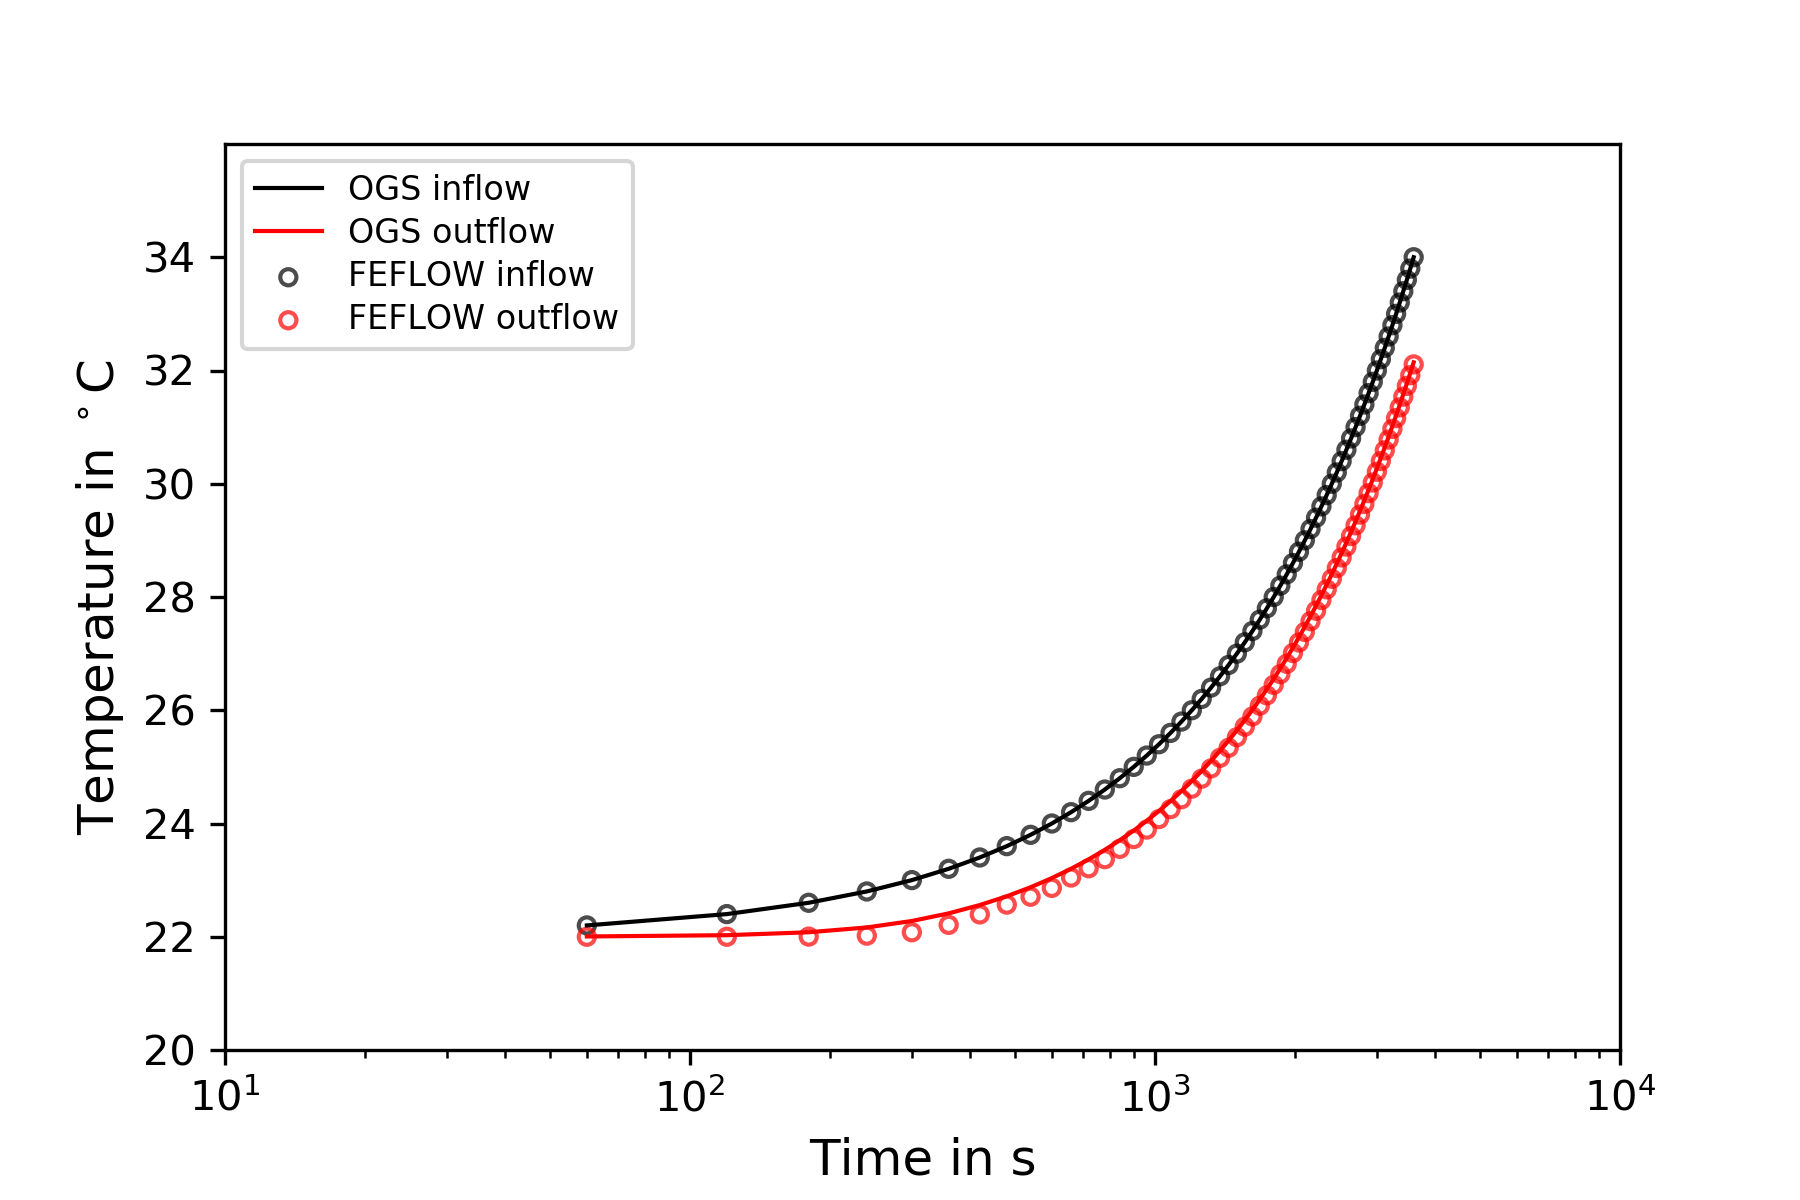 web/content/docs/benchmarks/heat-transport-bhe/3D_2U_BHE_figures/In_out_temperature_comparison.png